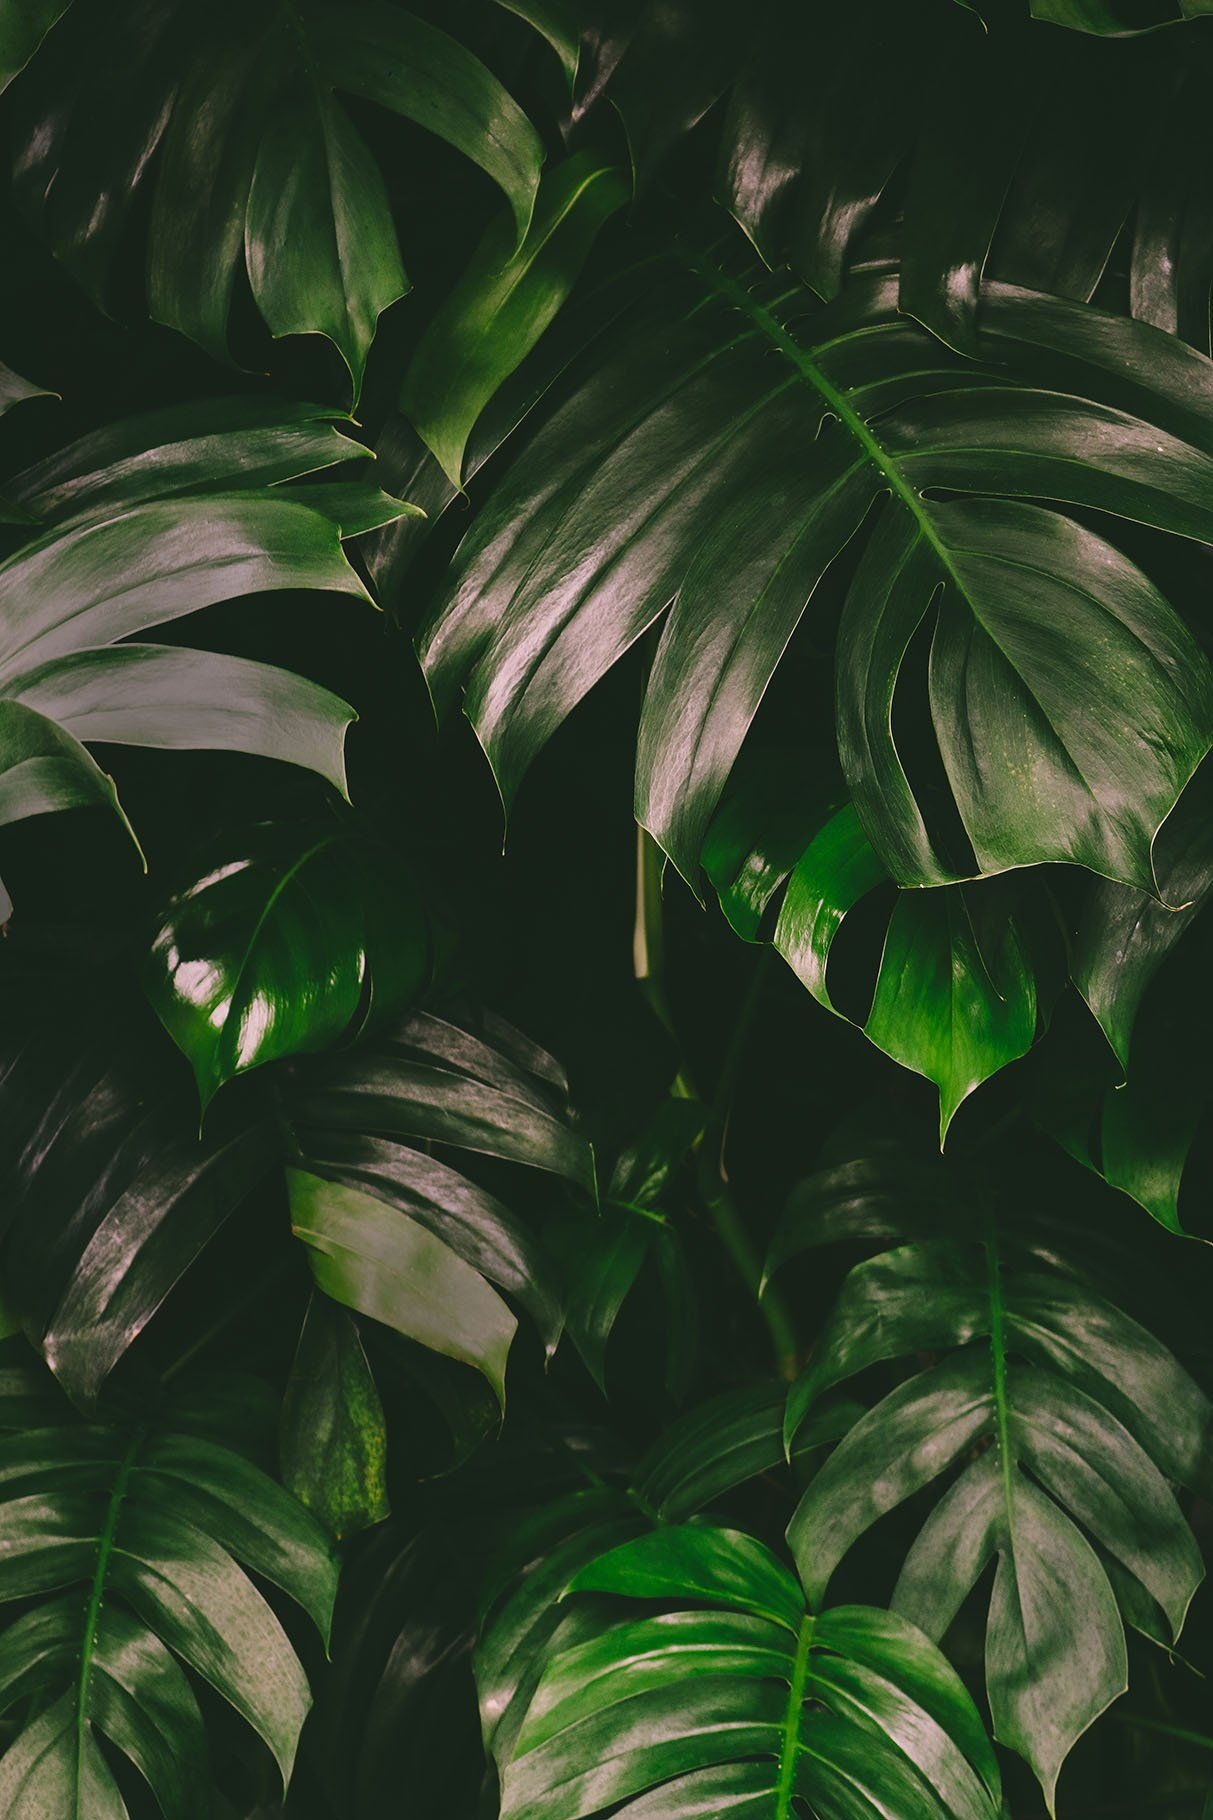 Monstera Leaves Jungle Background by Annakaroline on